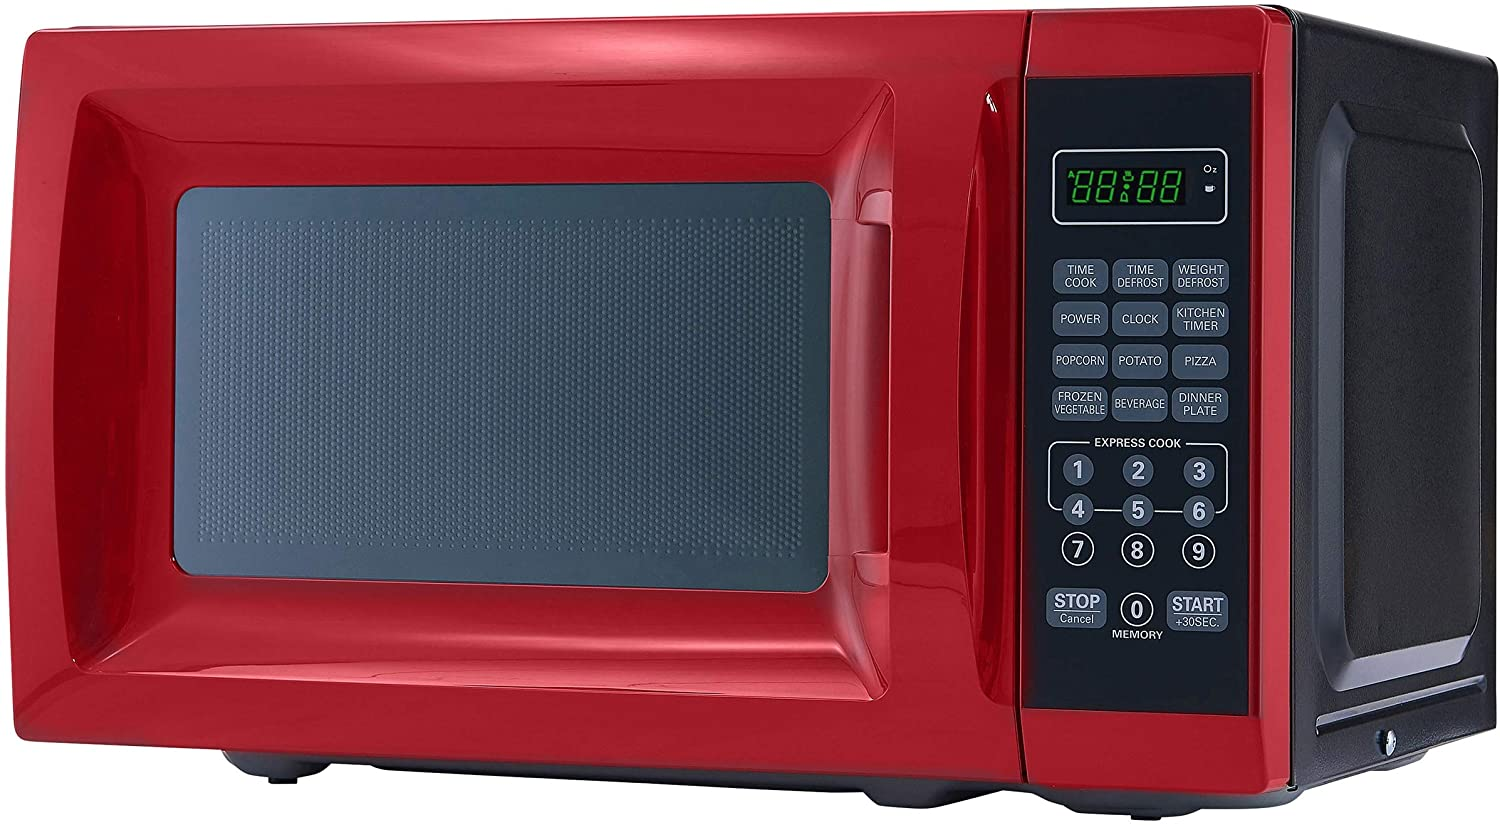 A picture of a mainstays red microwave oven showing the buttons